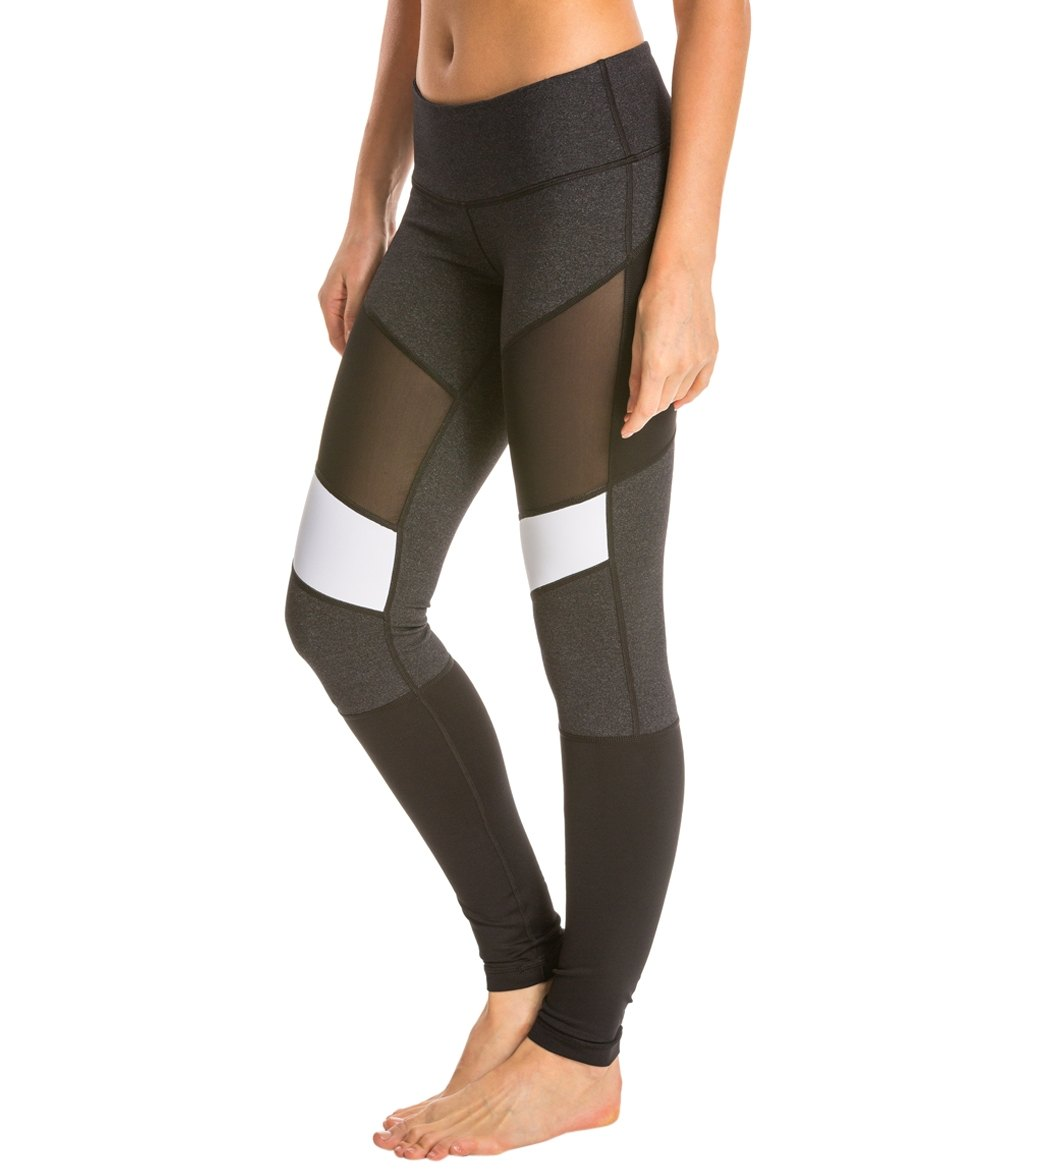 Vimmia New Action Capri Legging Heather Charcoal Small Women's Clothing Clothing, Shoes & Accessories